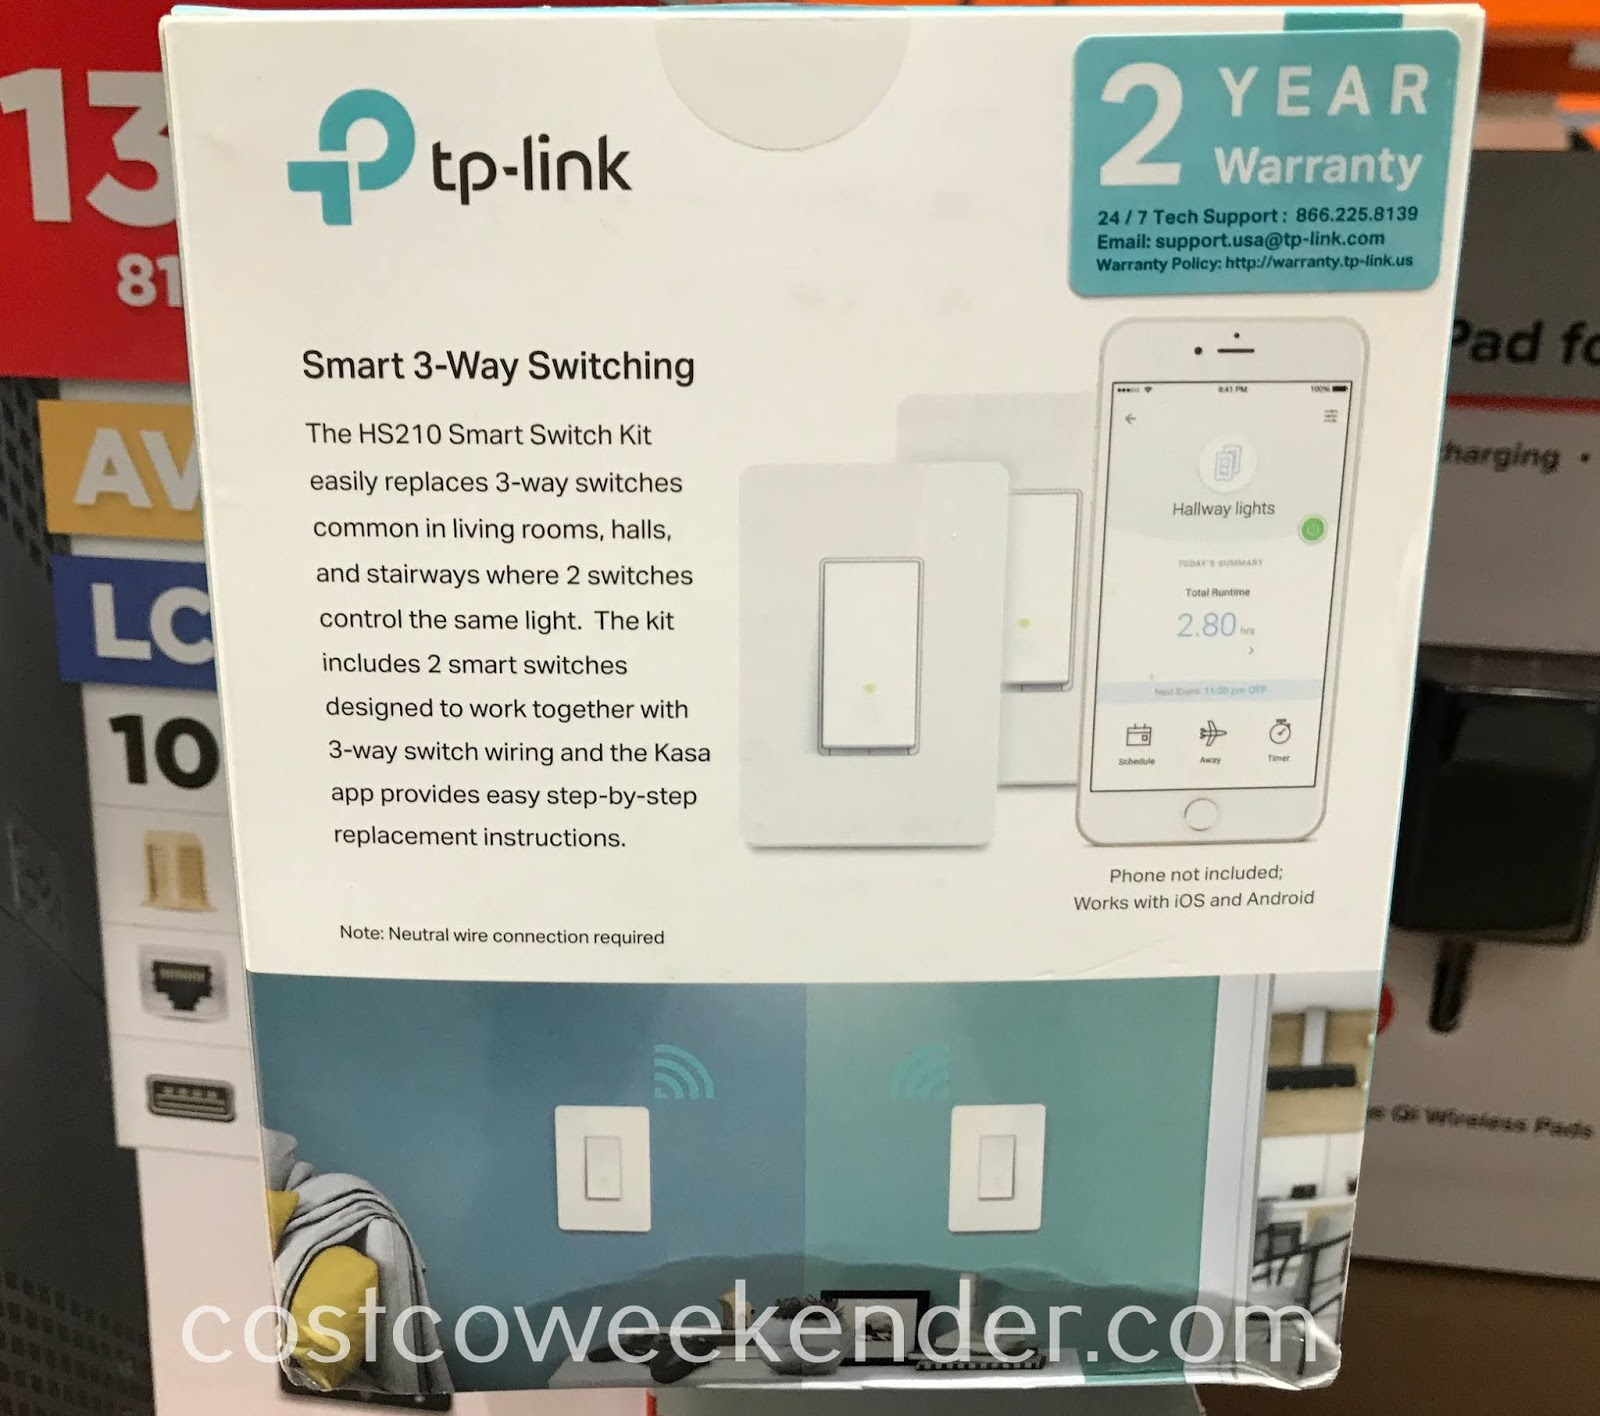 Costco 1326852 - Turn your home a smart home with TP-Link 3-Way Smart Wi-Fi Light Switches